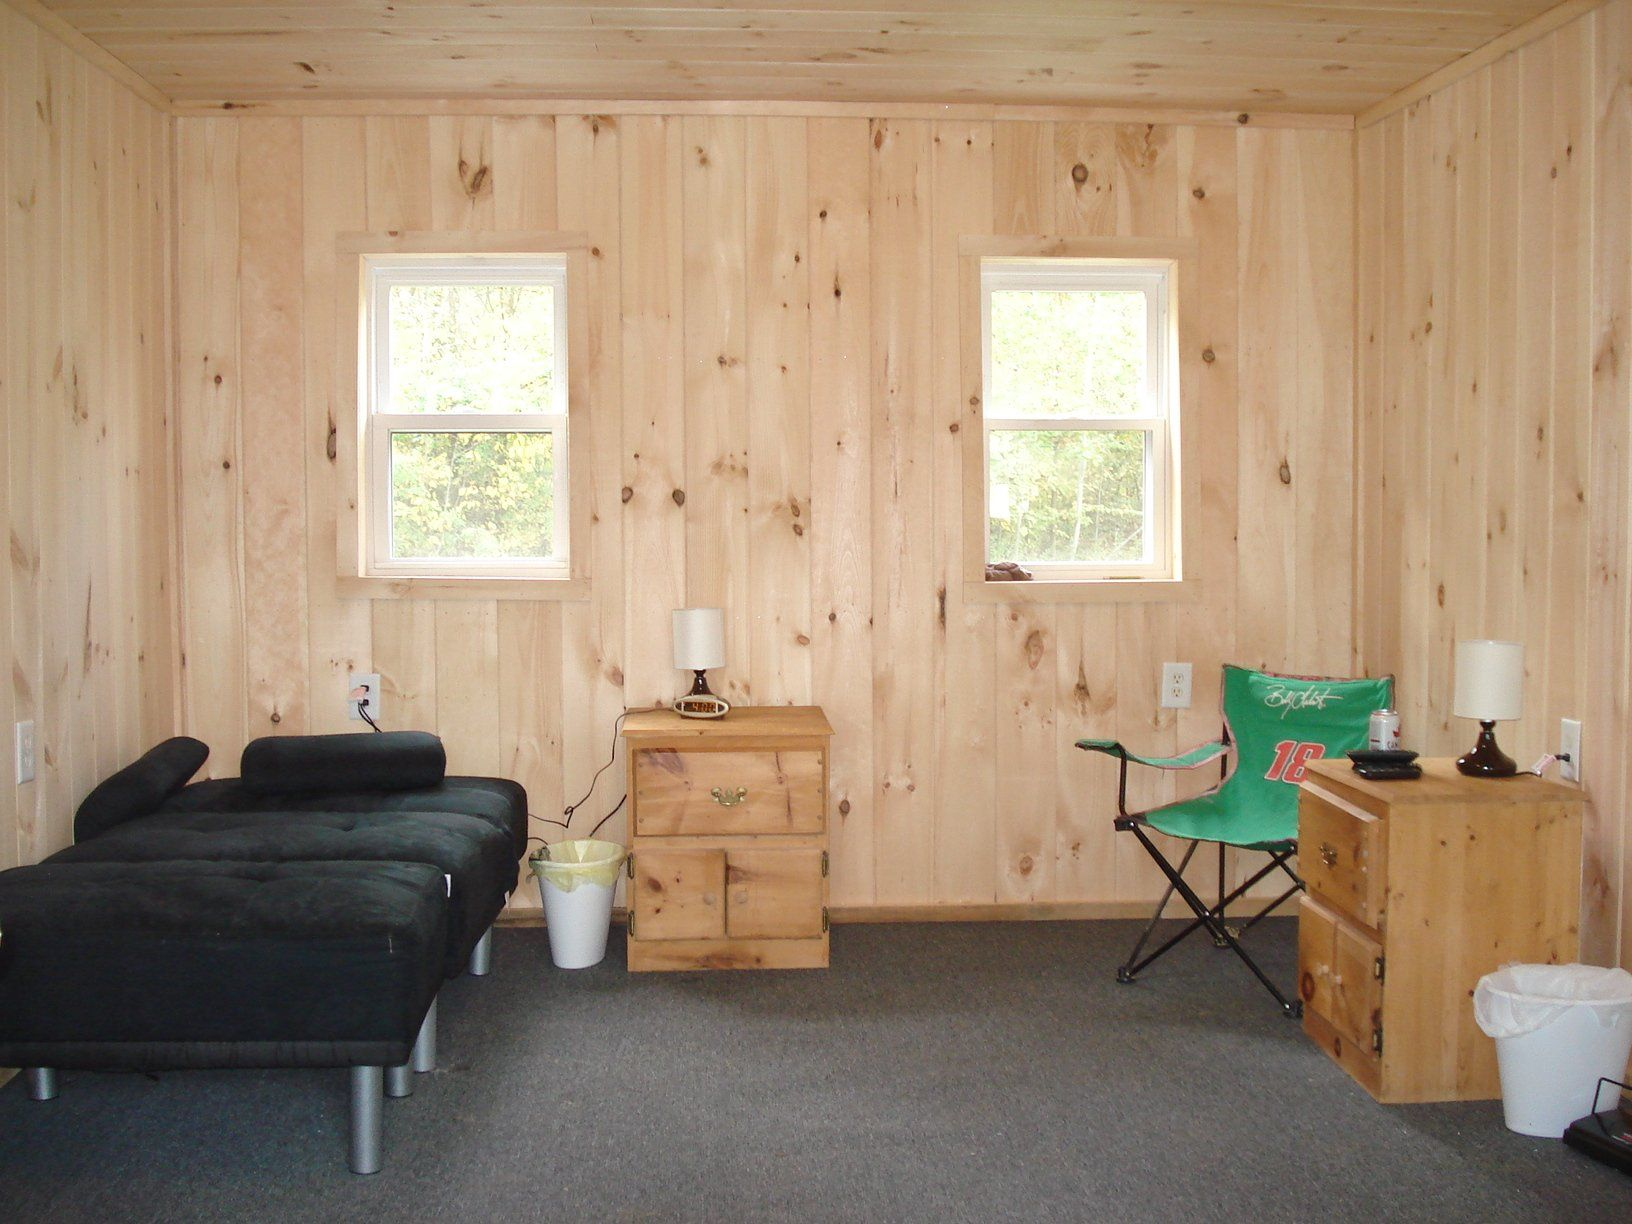 How To Finish The Inside Of A 12 X 20 Cabin On A Budget Diy